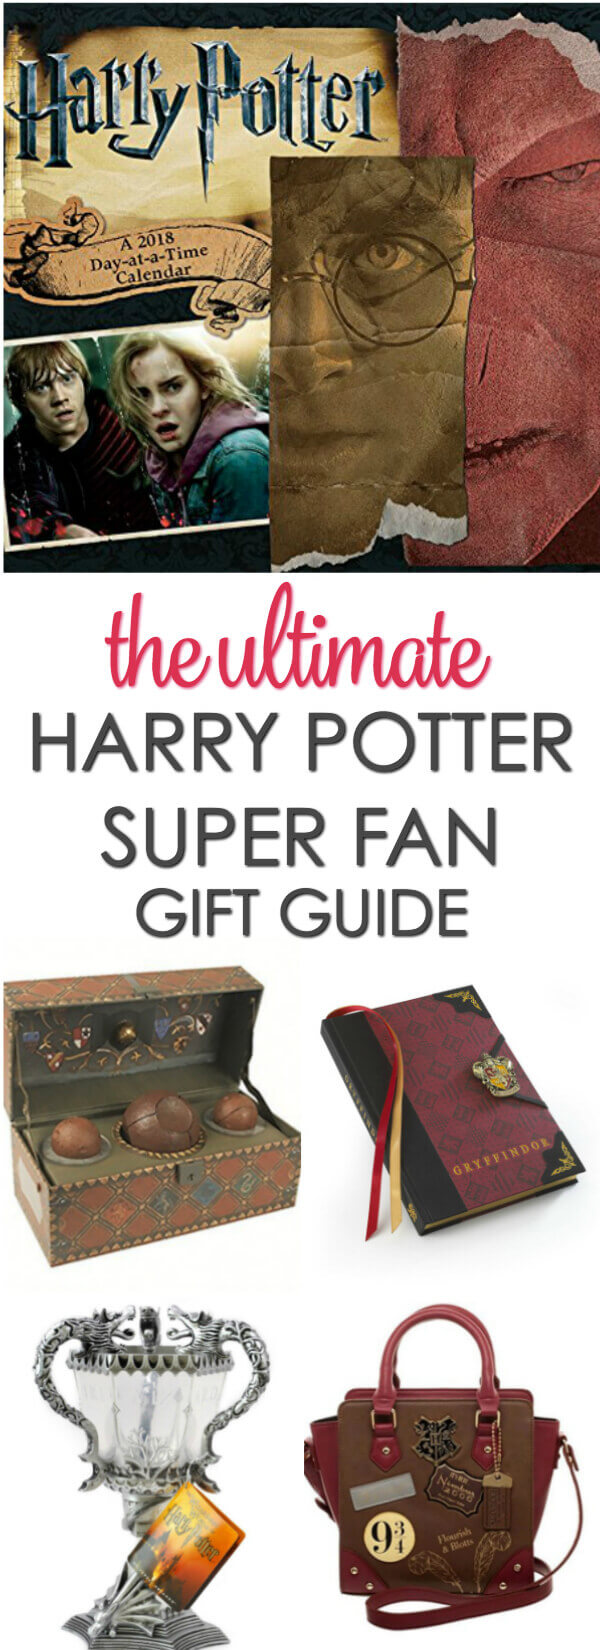 If you know someone that is a Harry Potter super fan, check out this list of cool Harry Potter gifts!